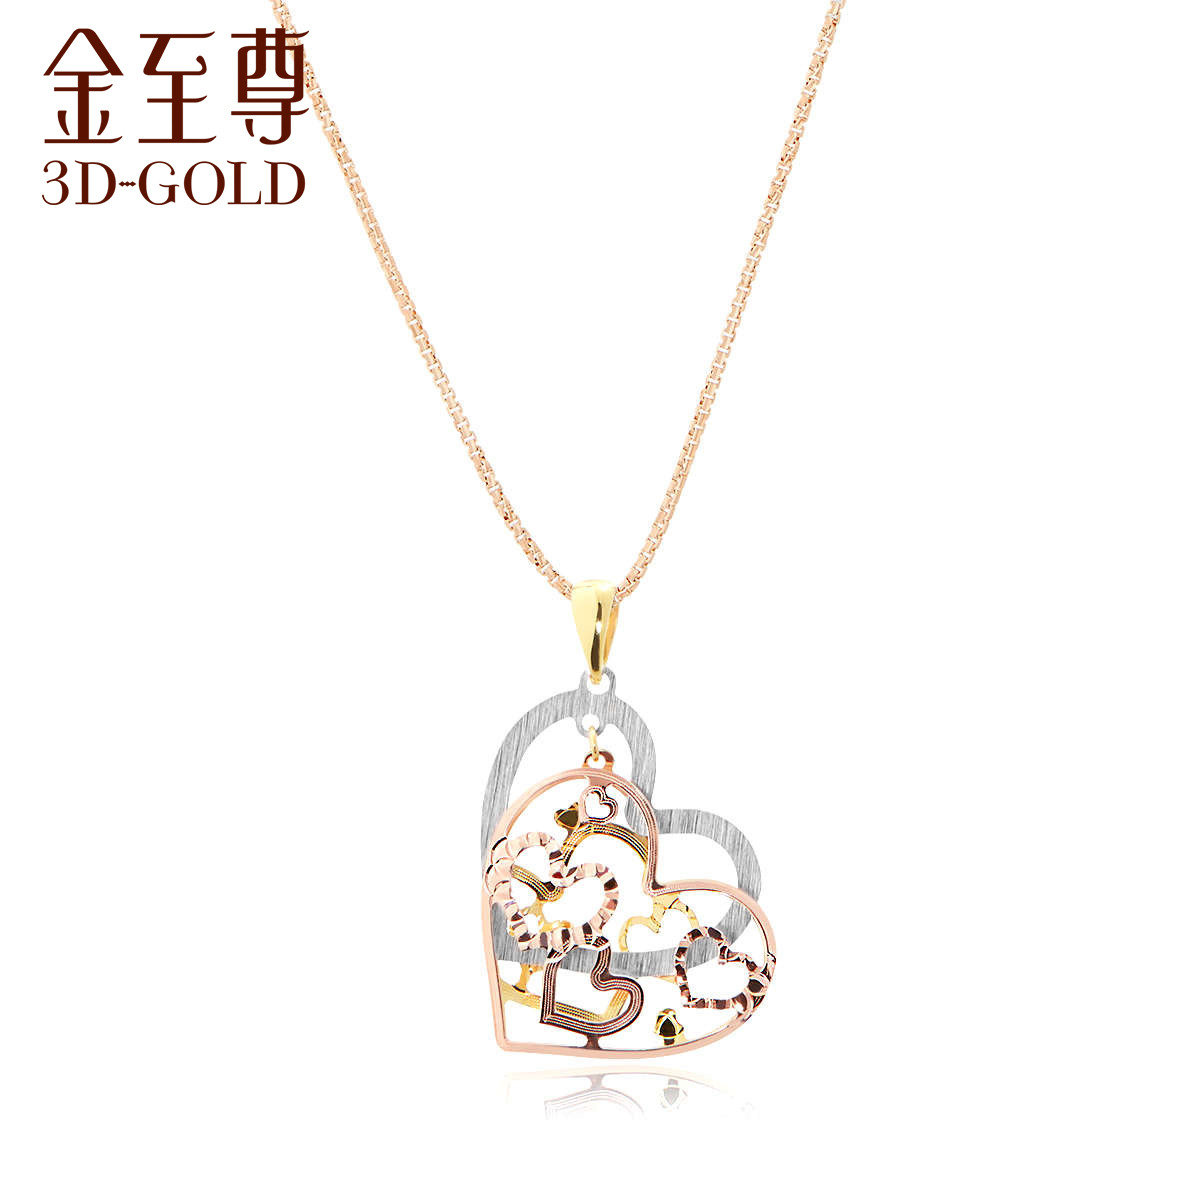 18K Multi-Color Gold Pendant